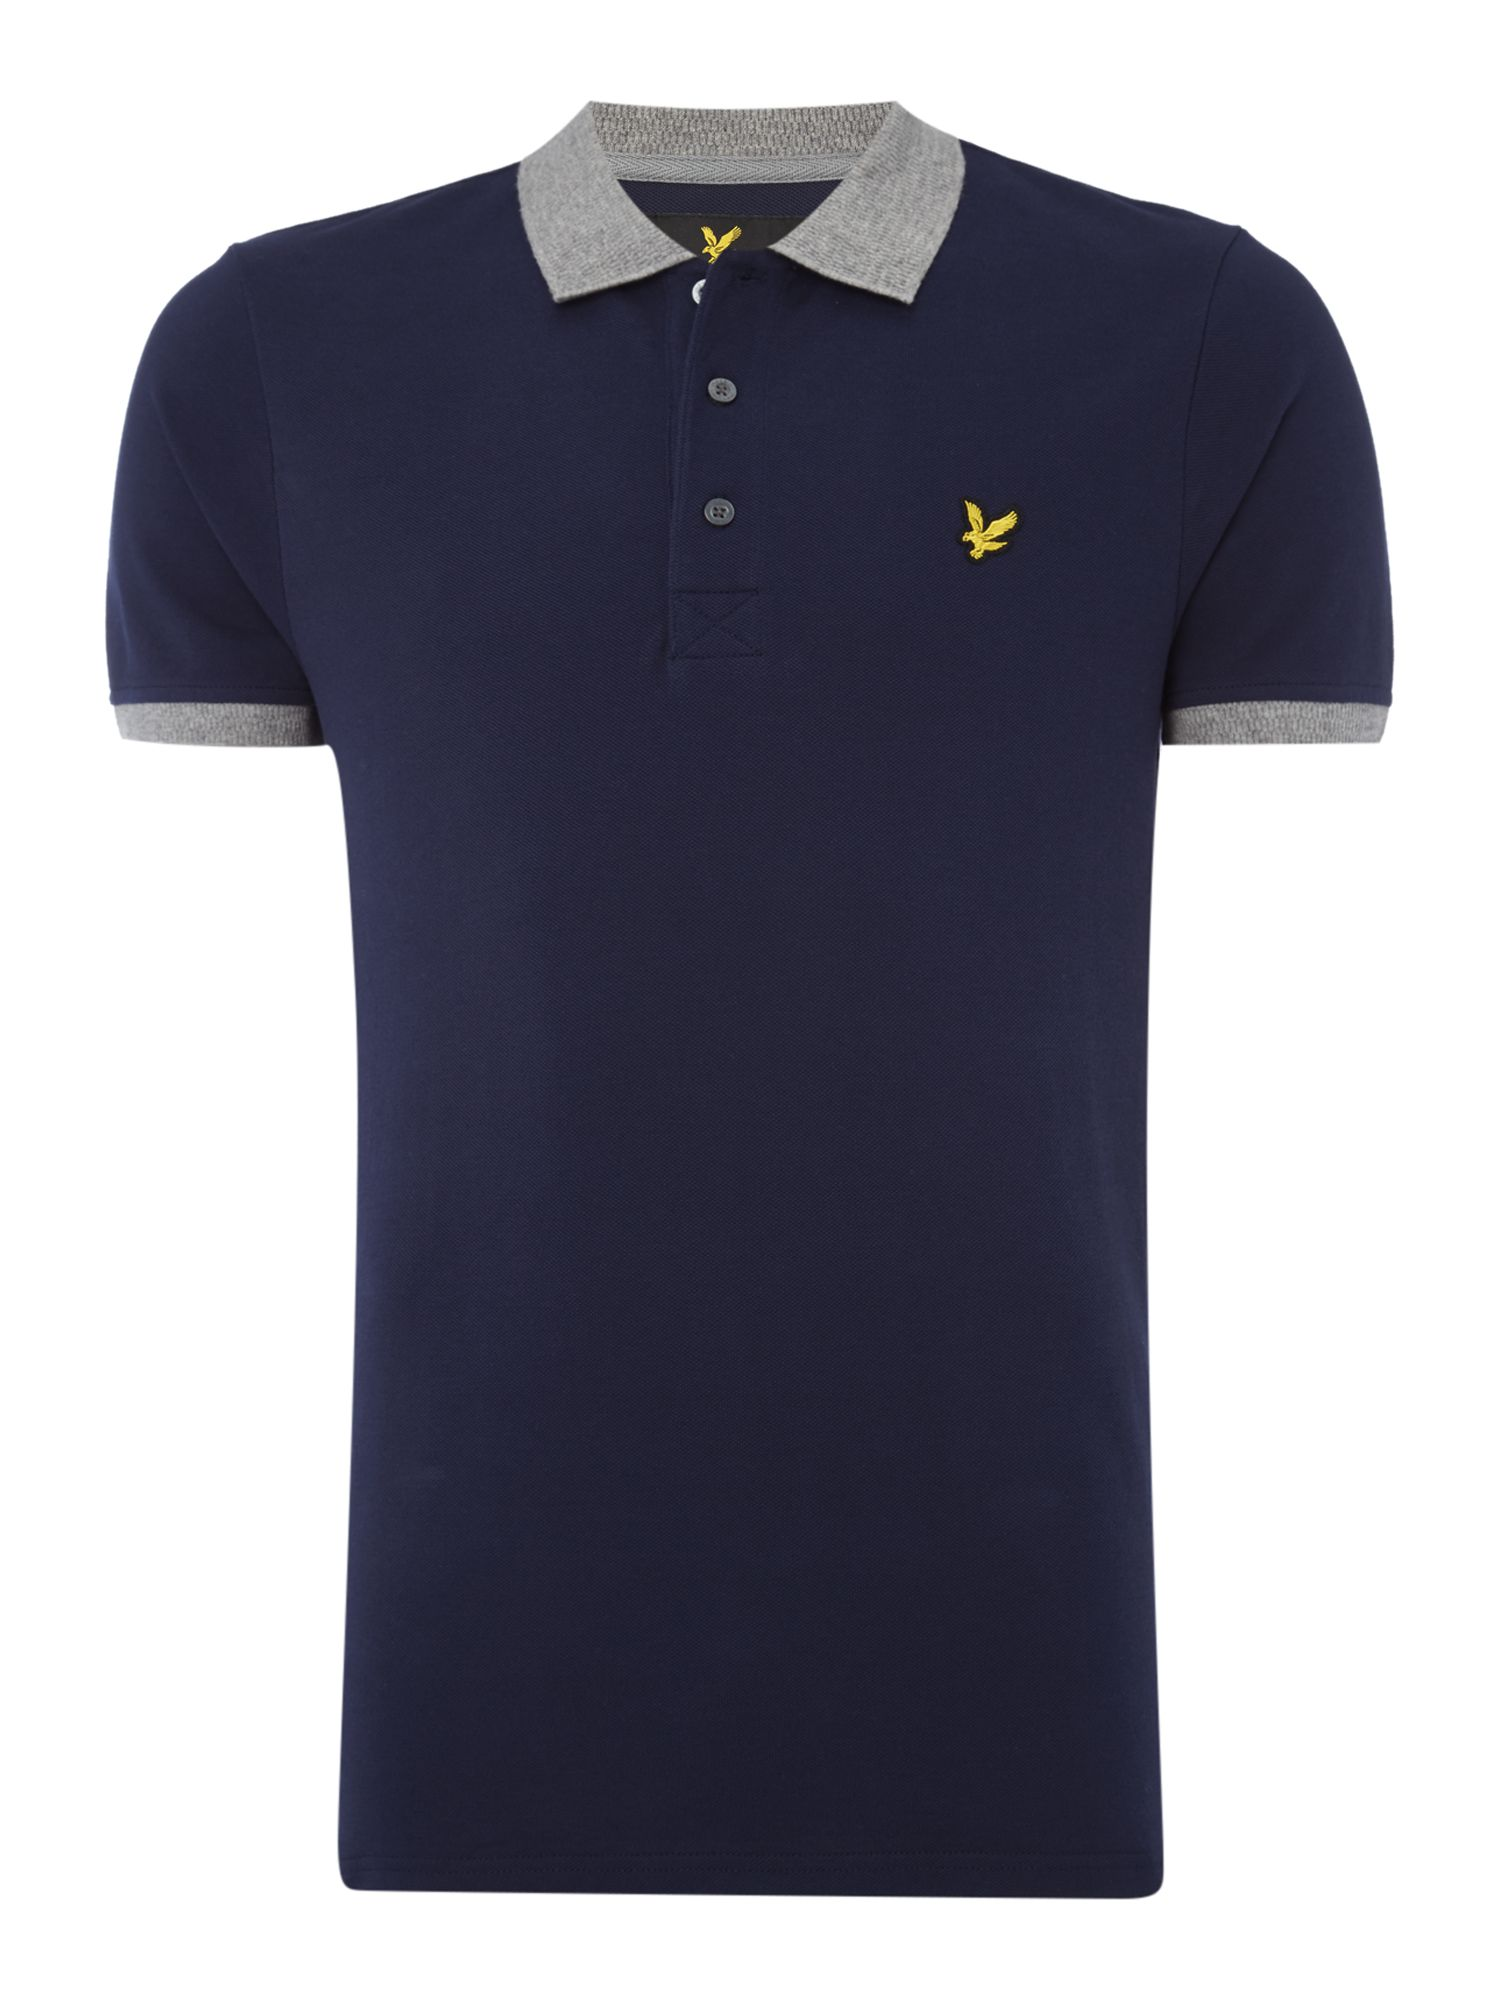 Lyle and Scott Men's Lyle and Scott Contrast rib short sleeve polo, Navy